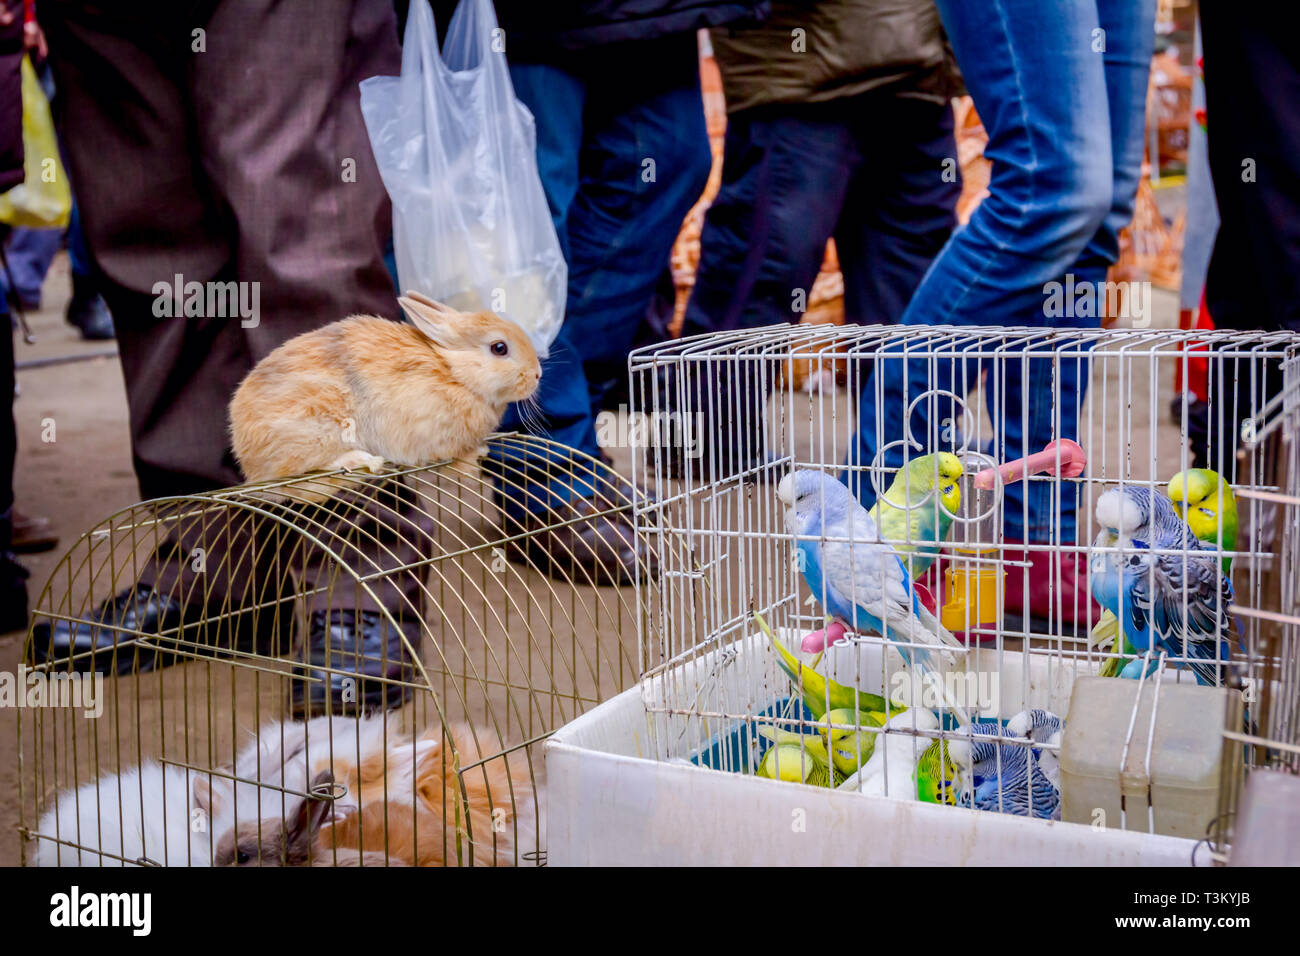 Rabbits In Cages Stock Photos & Rabbits In Cages Stock